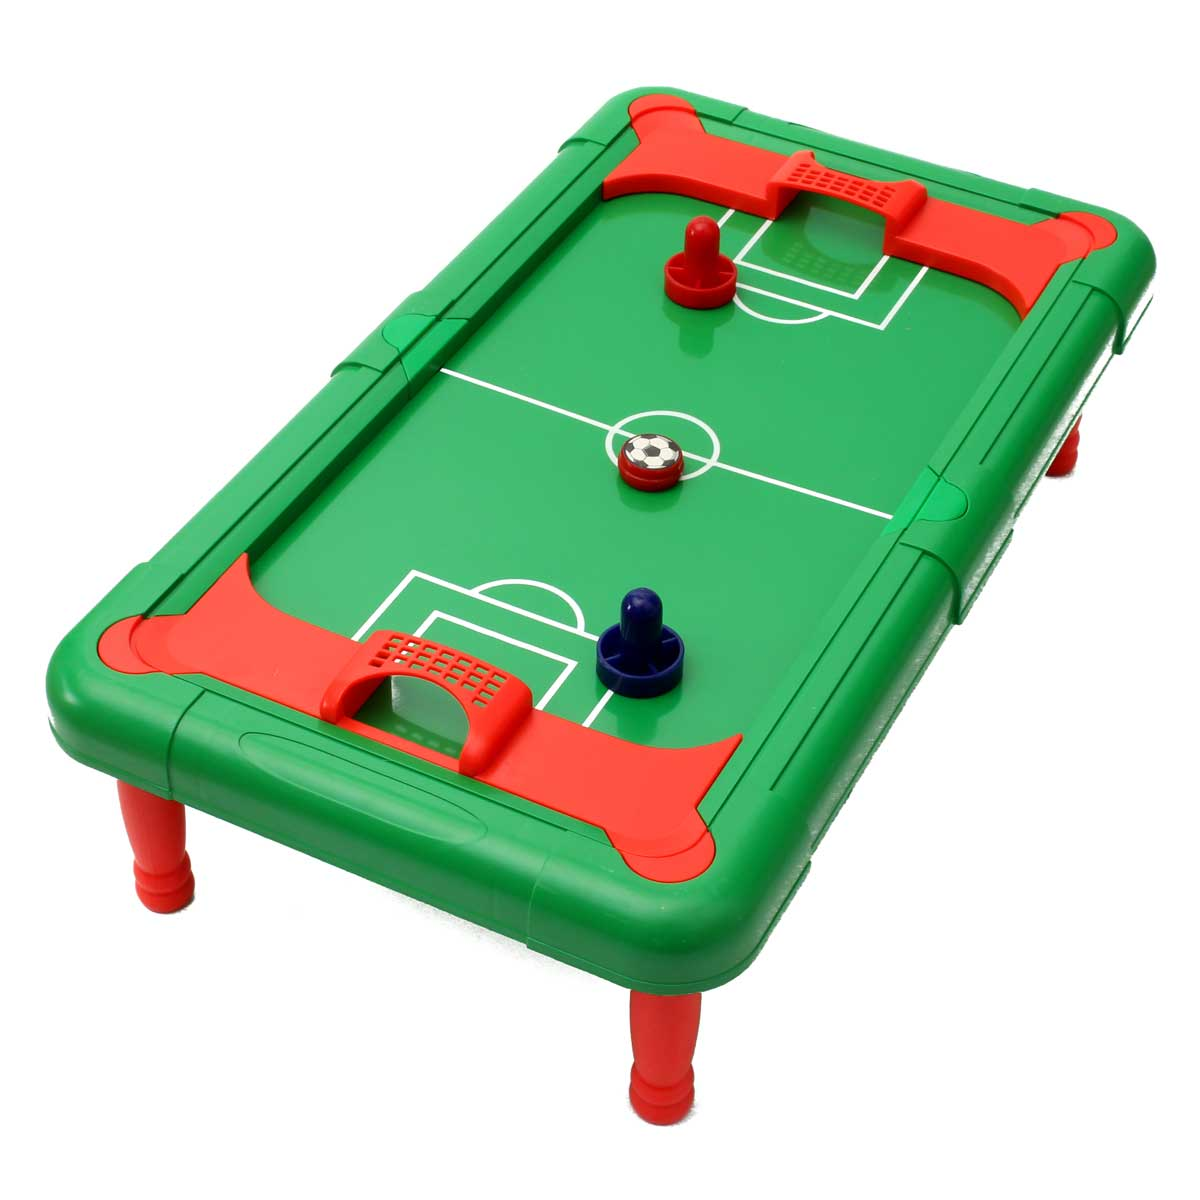 New Table Soccer Game Desktop Football Game With 10 Soccercards for 2 Players Tabletop Shoot ChildrenToys Kids Toy 43*24.5*12CM(China (Mainland))